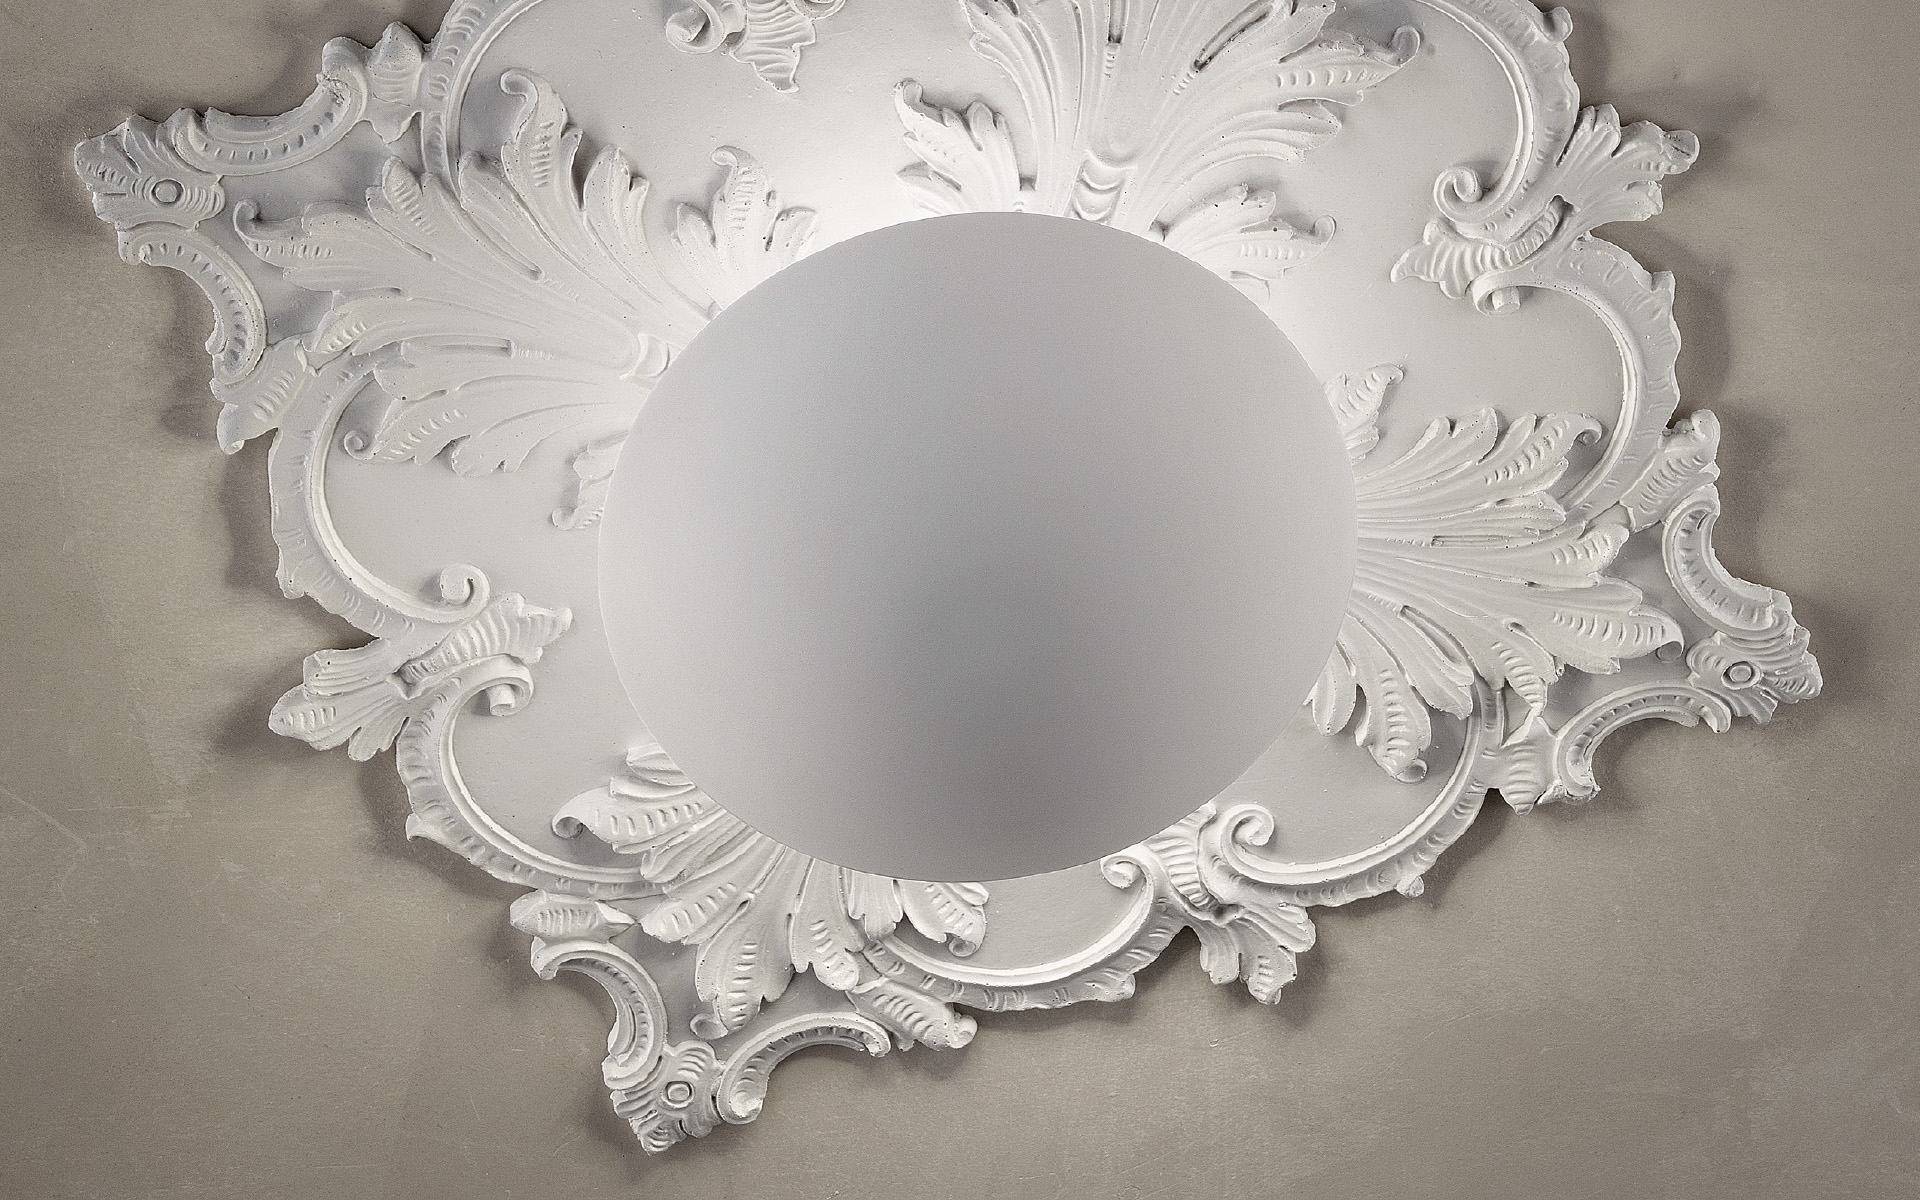 Tiepolo Ceiling Lamp